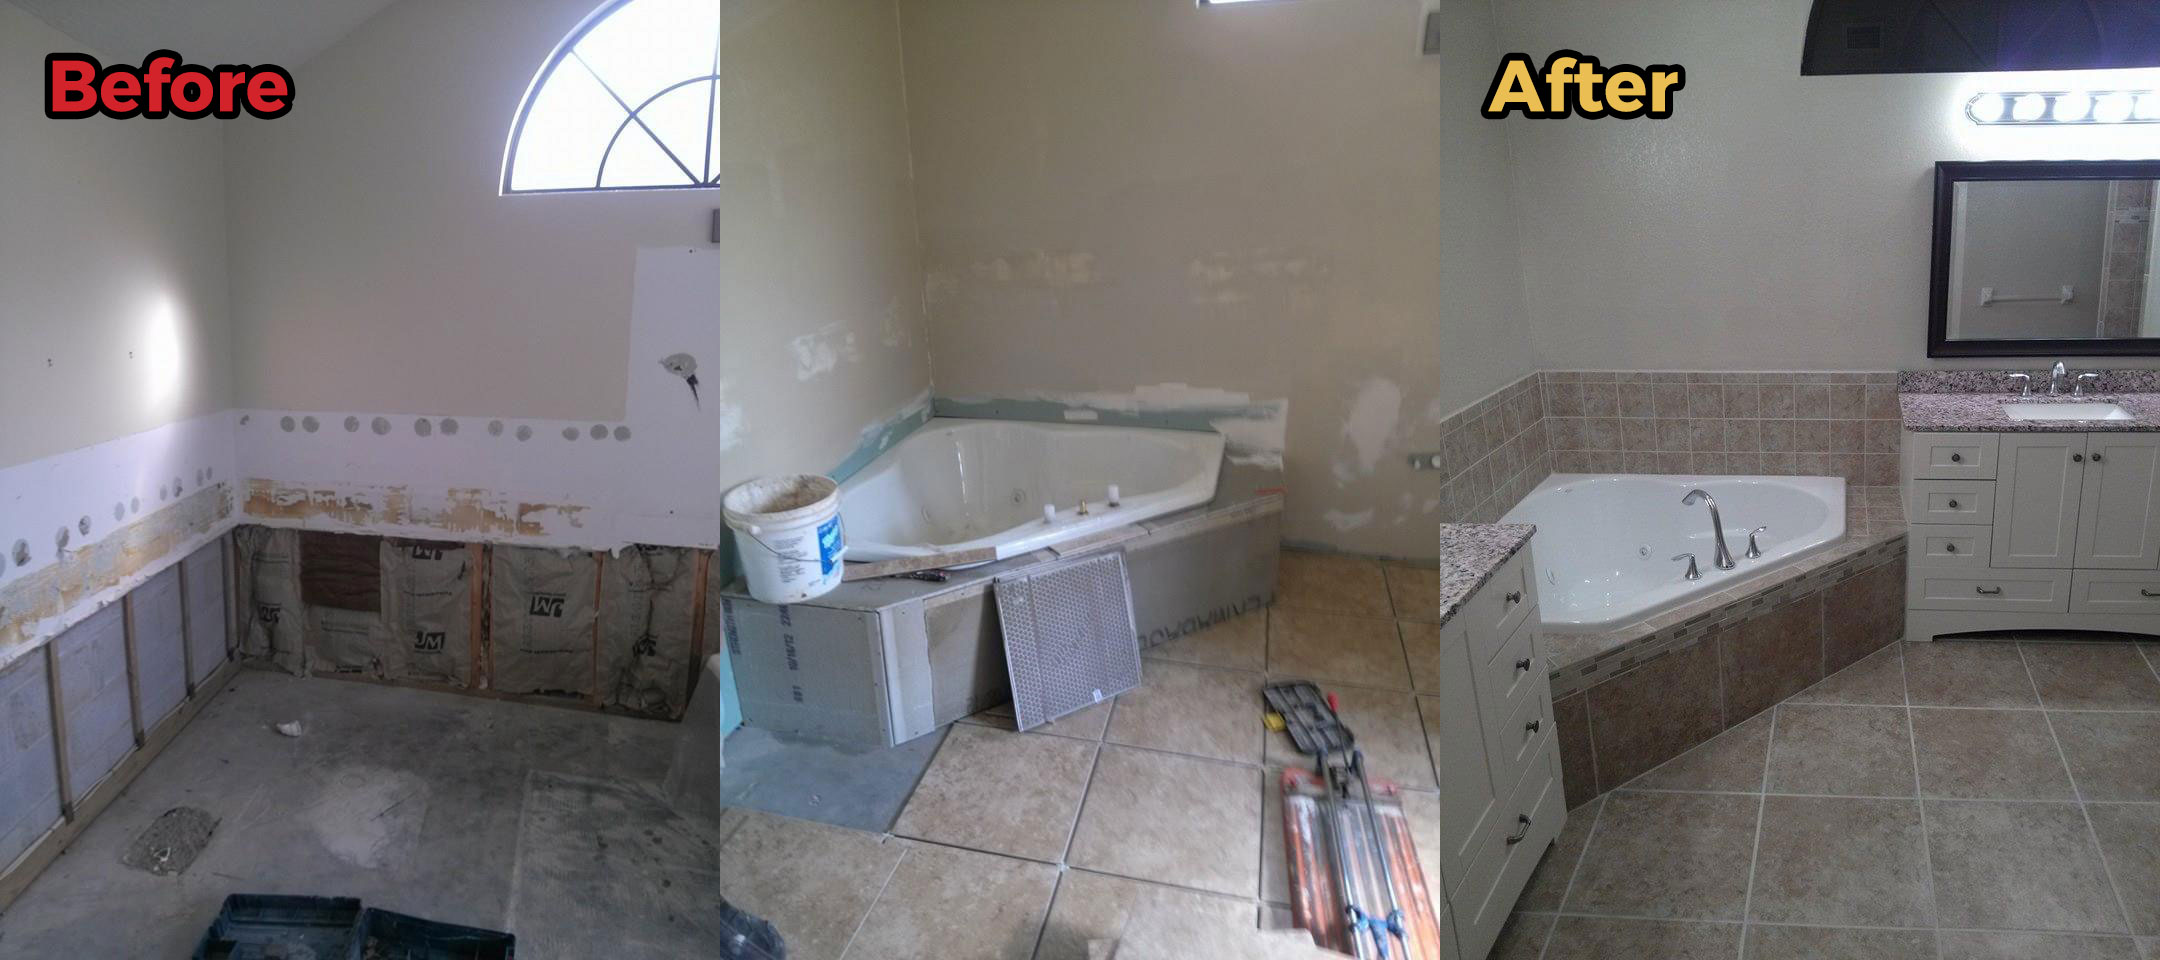 Best Plumbers Cocoa Beach FL before/after